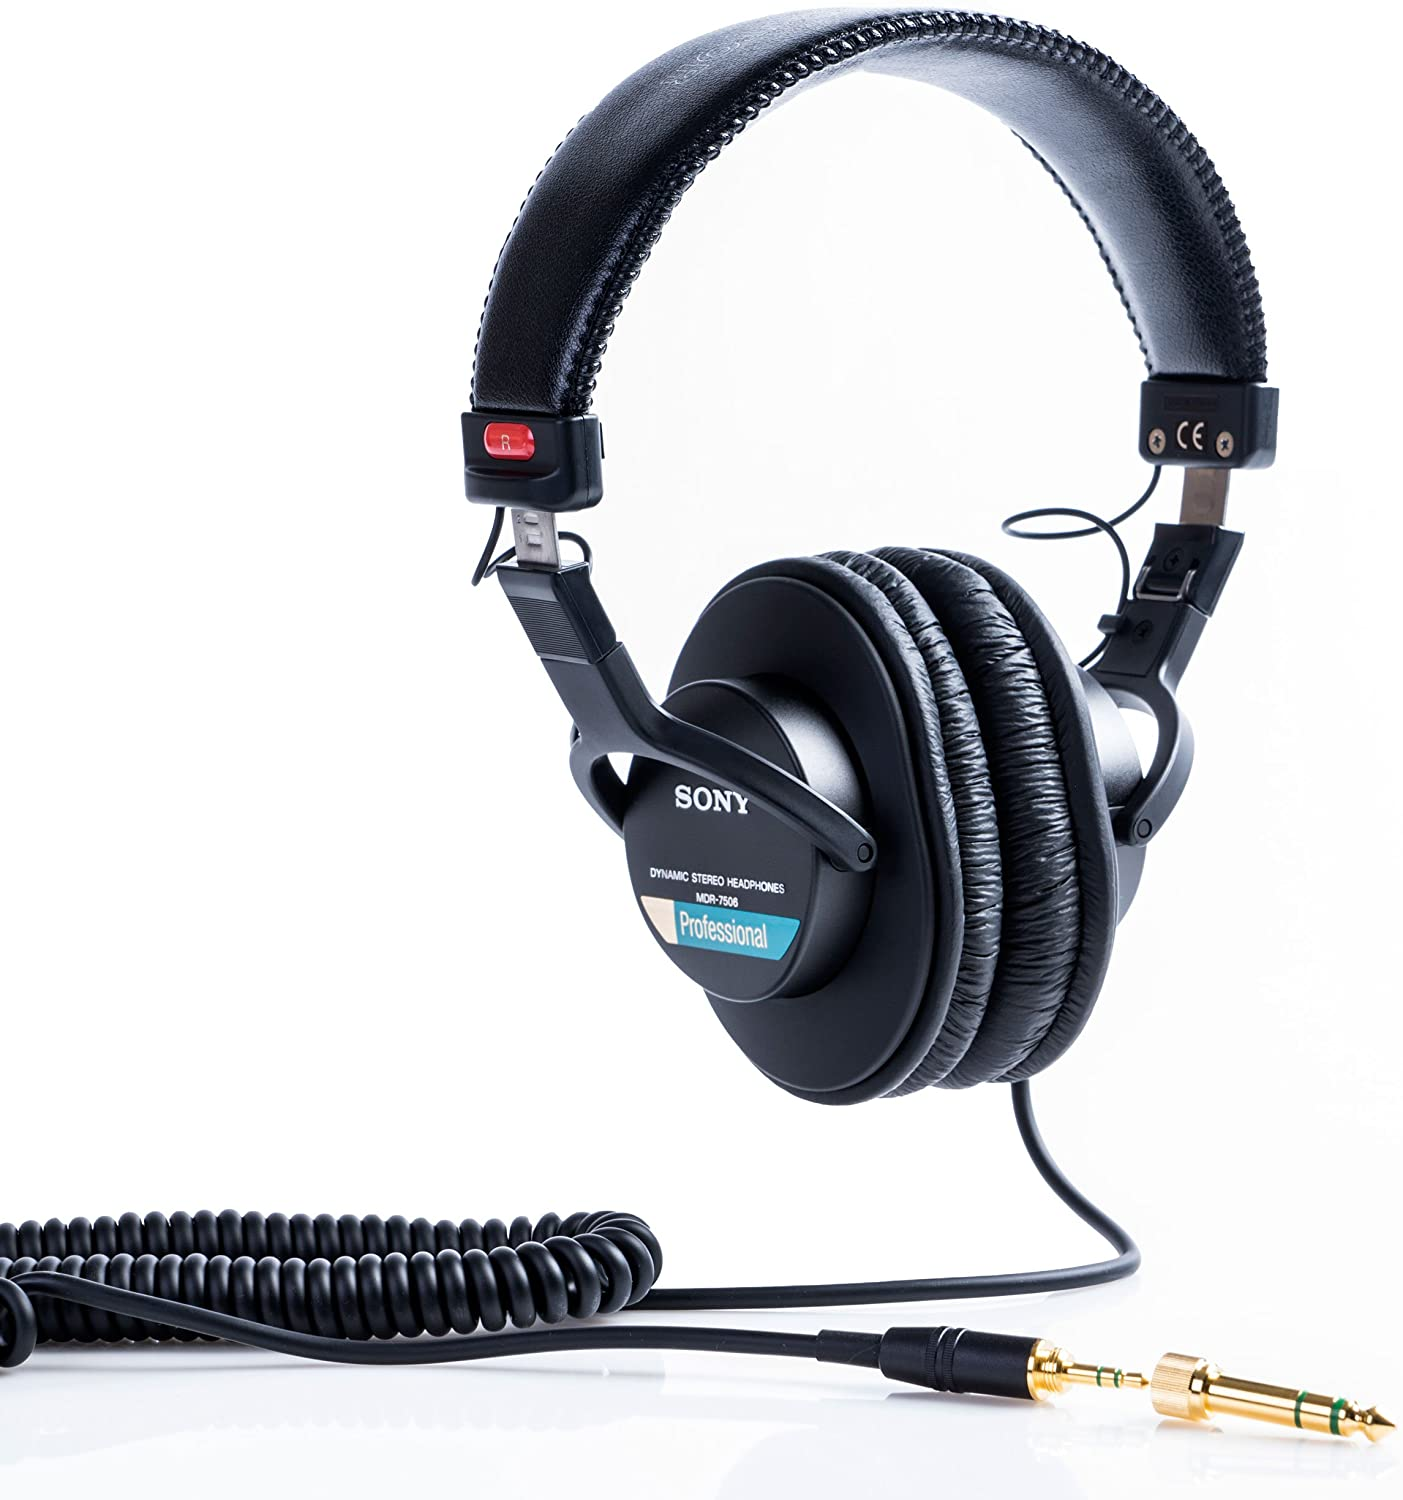 Sony Professional Large Diaphragm Headphones | MDR7506